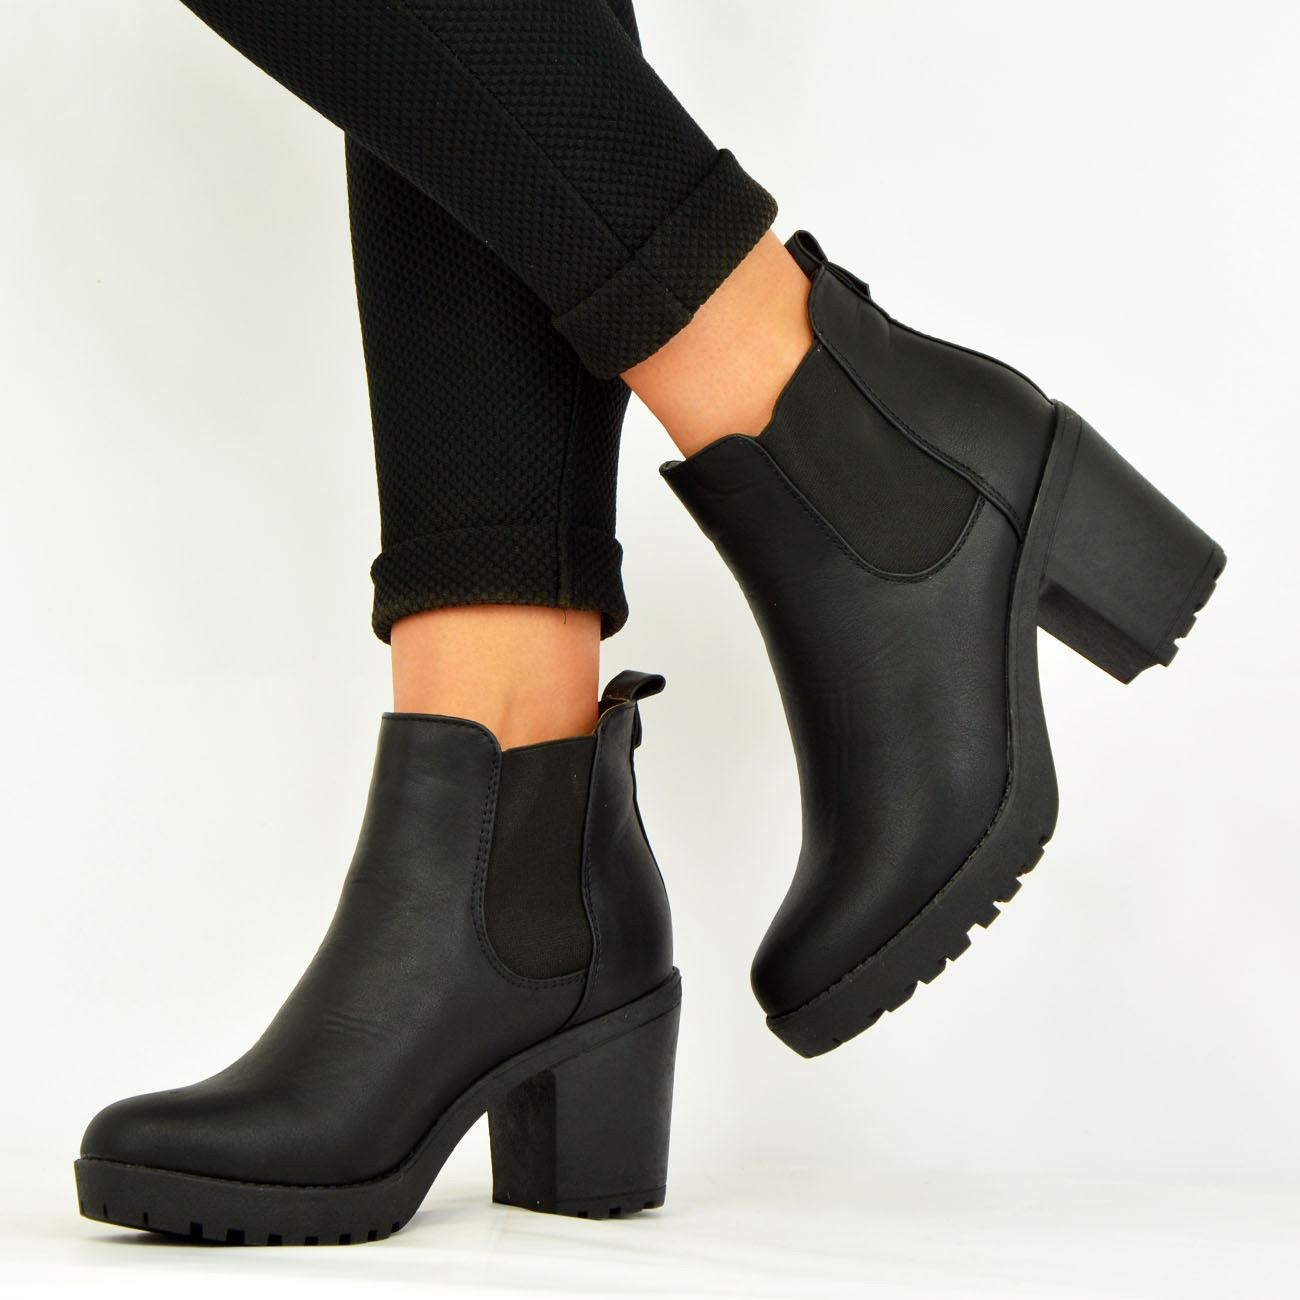 LADIES-WOMENS-ANKLE-CHELSEA-BOOTS-CHUNKY-BLOCK-HEELS-PLATFORM-SHOES-SIZE-UK-3-8 thumbnail 5